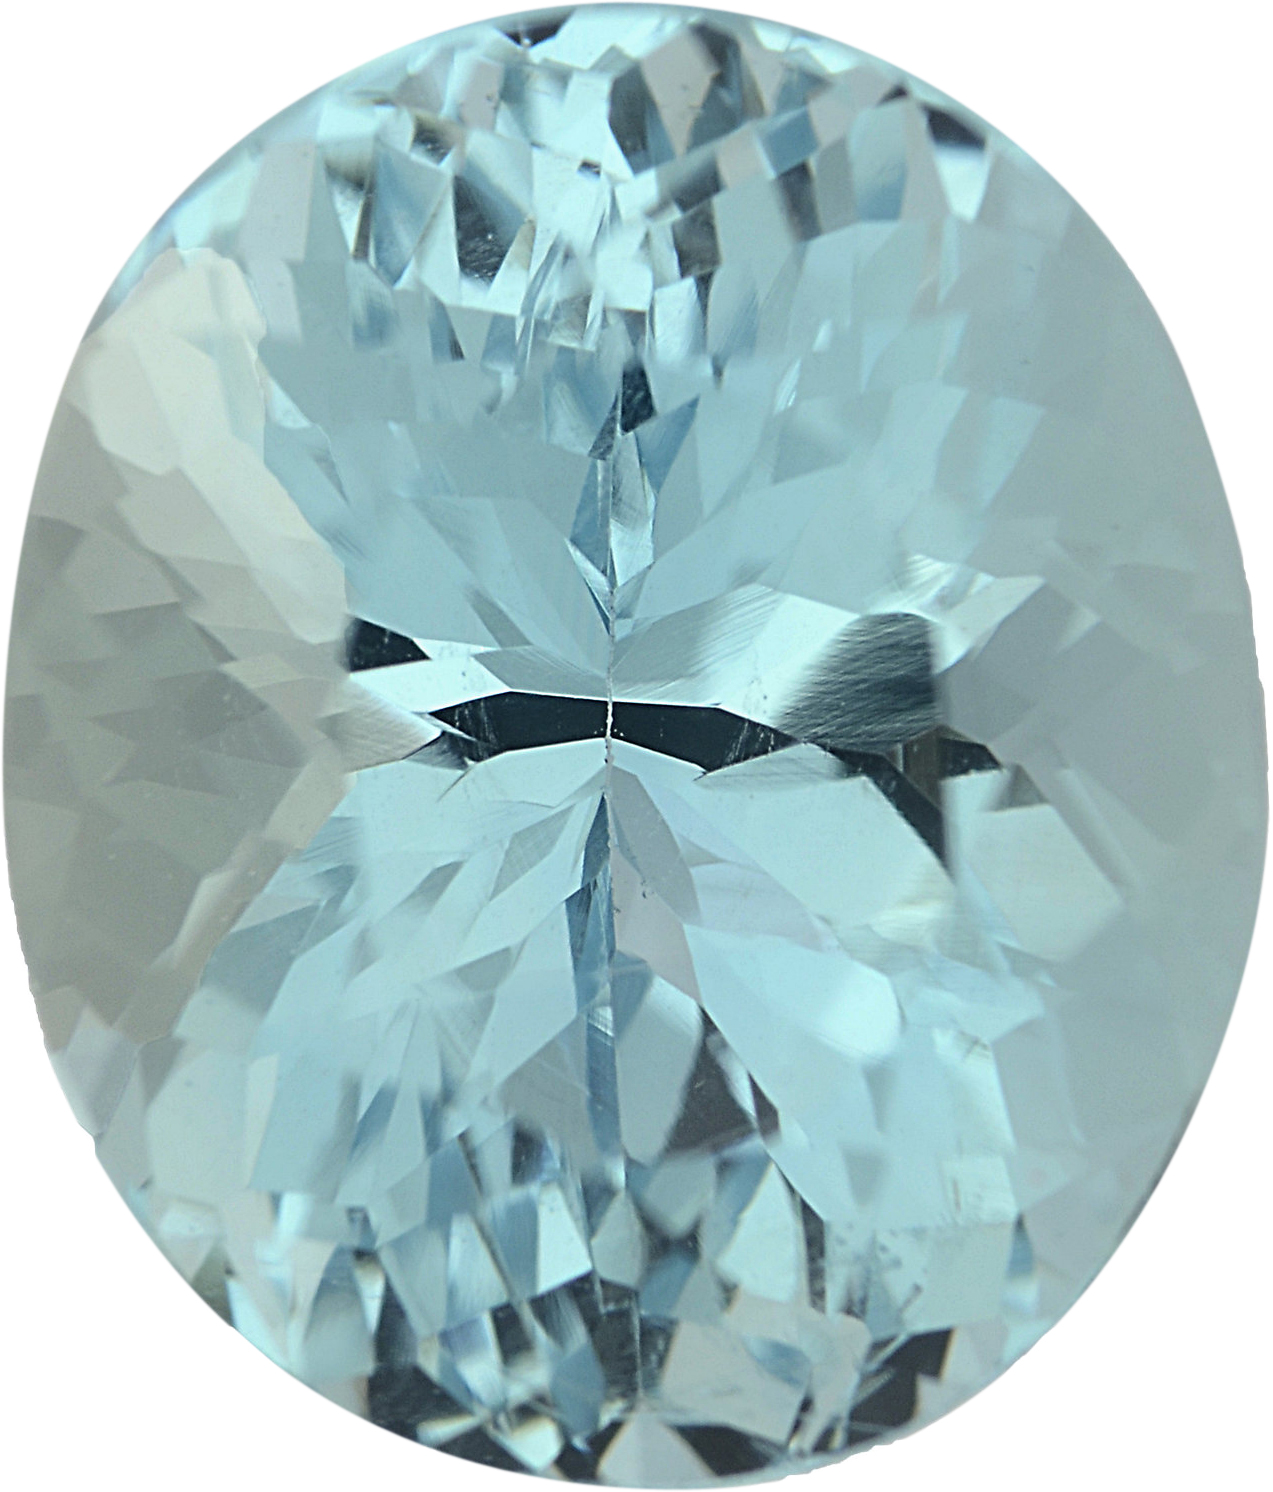 Lovely Loose Aquamarine Gem in Oval Cut, Greenish Blue, 10.81 x 9.16 mm, 3.92 carats